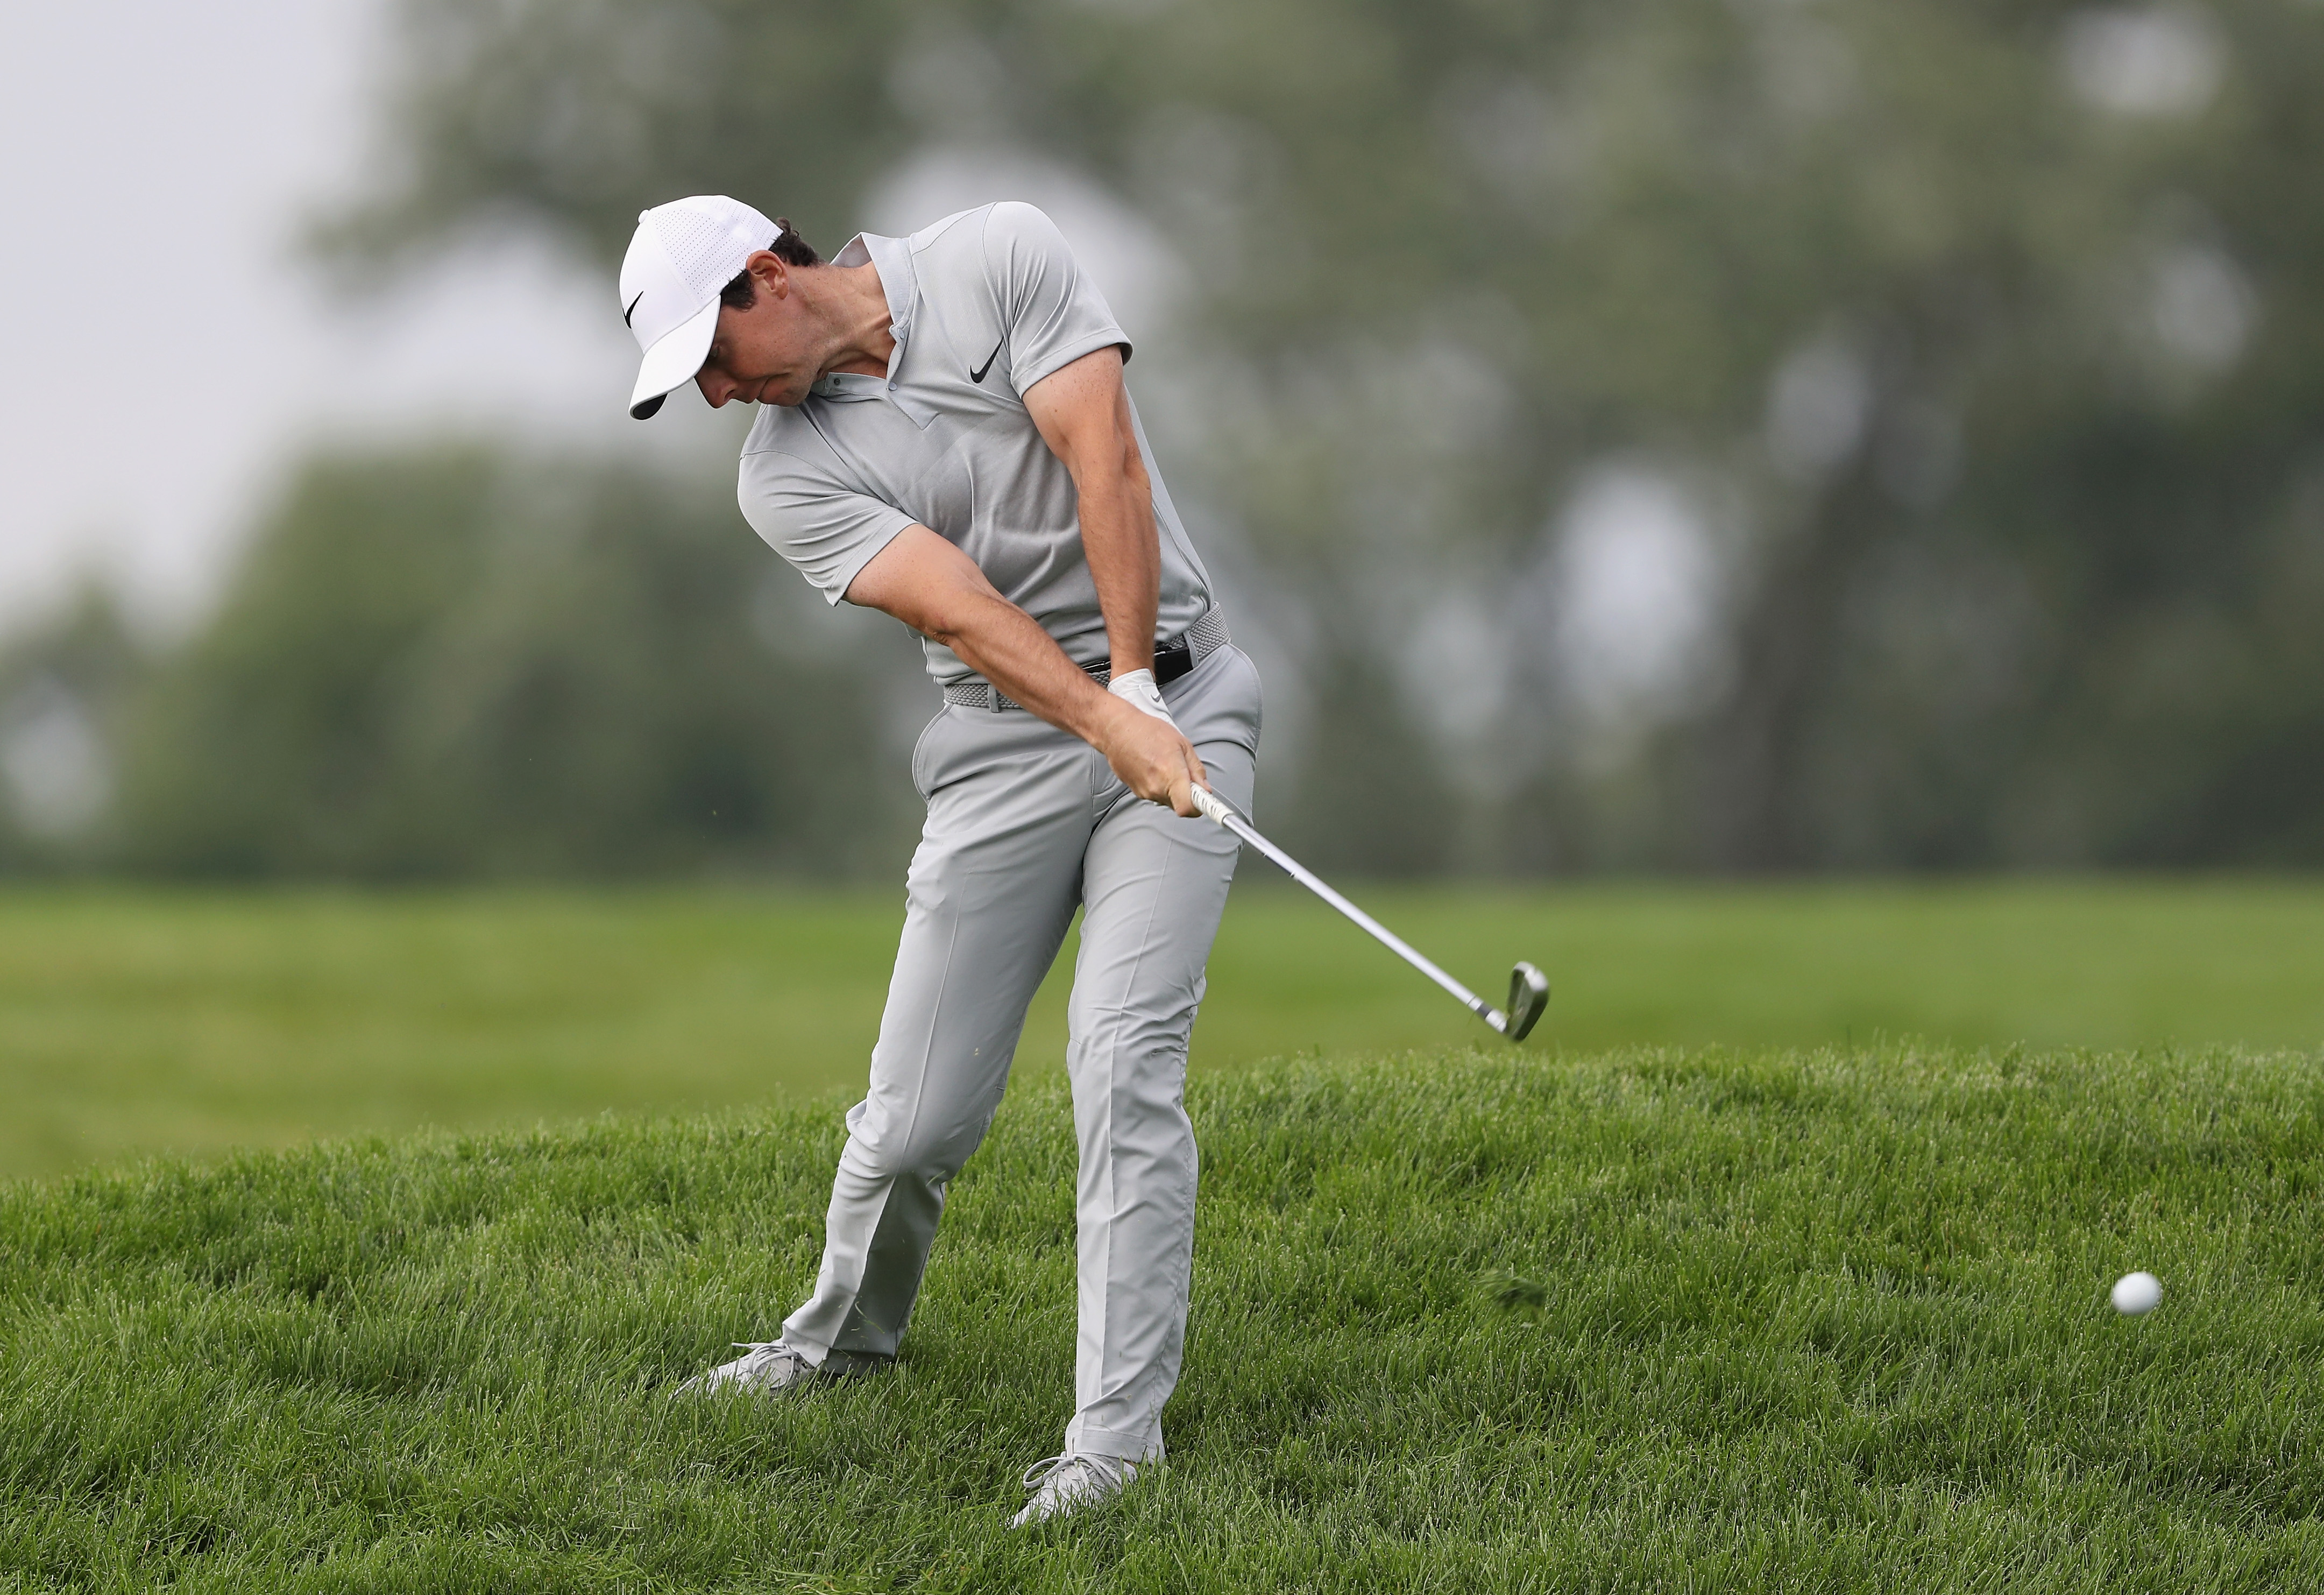 Rory McIlroy put himself in a big hole with a round of 7-over 77 Friday at the U.S. Open. (Getty Images)